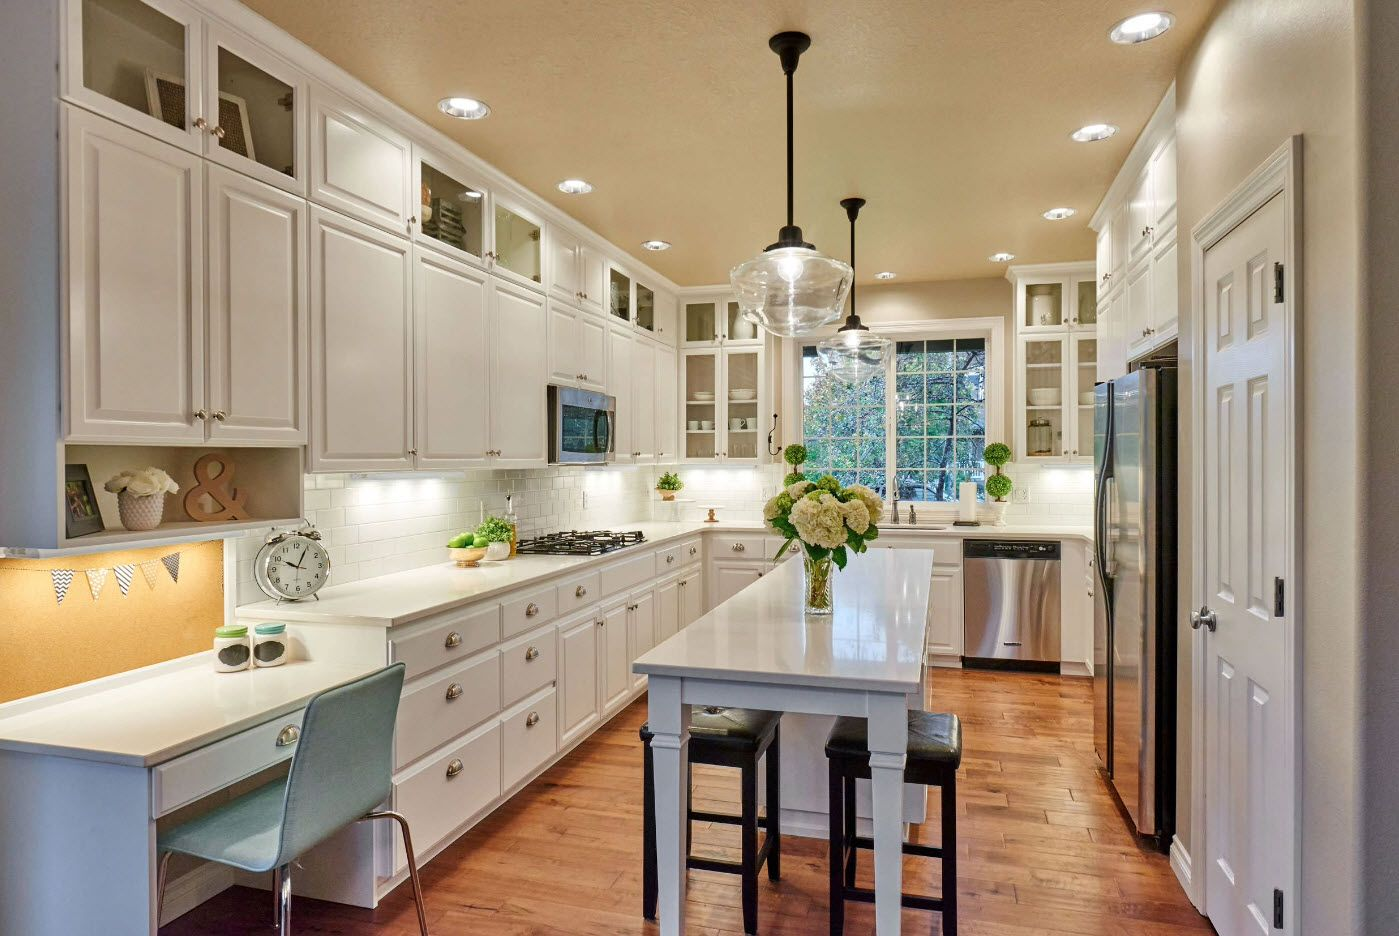 White classic set of the kitchen with white kitchen facades and glossy table in the middle